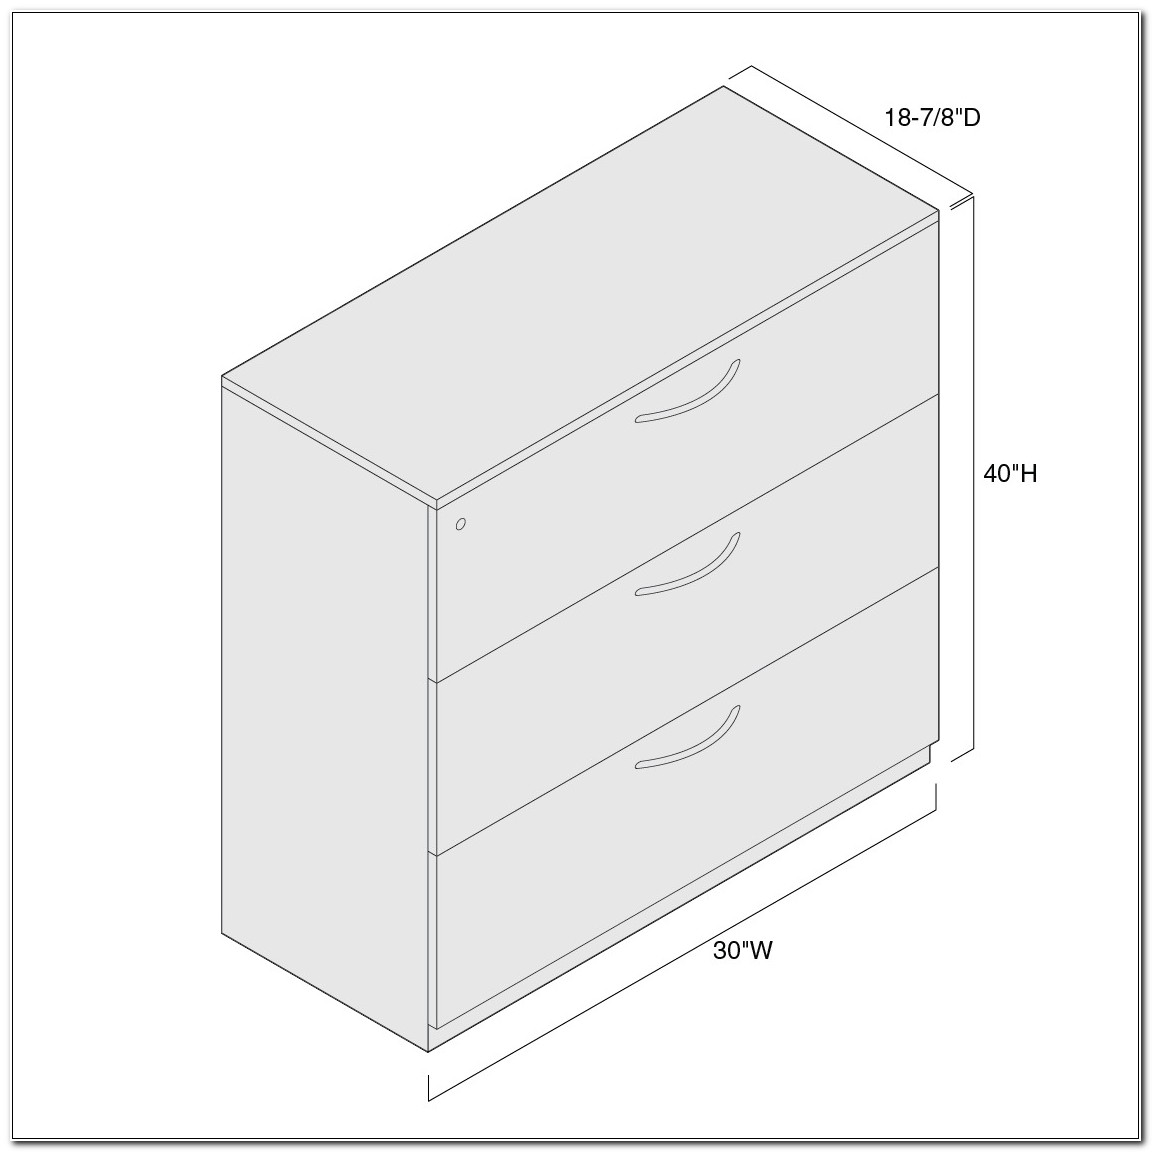 Universal Lateral File Cabinet Rails